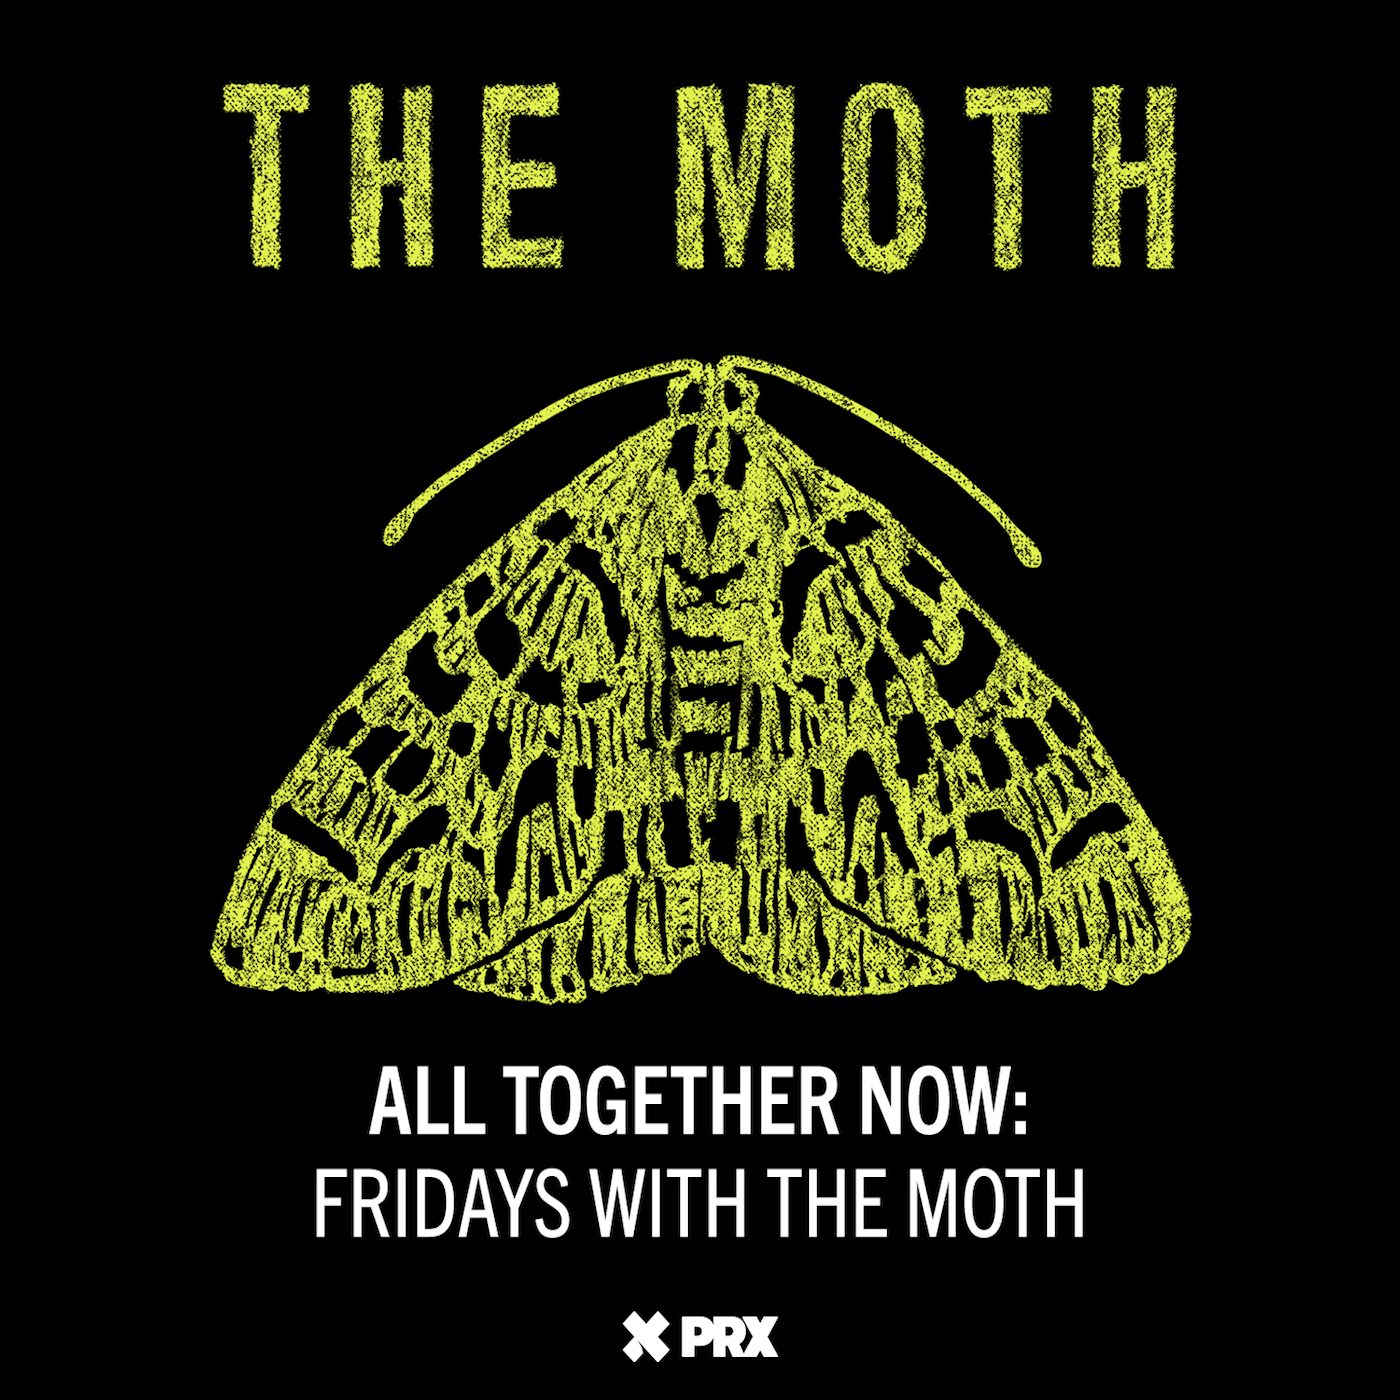 All Together Now: Fridays with The Moth - Shannon Cason & June Cross